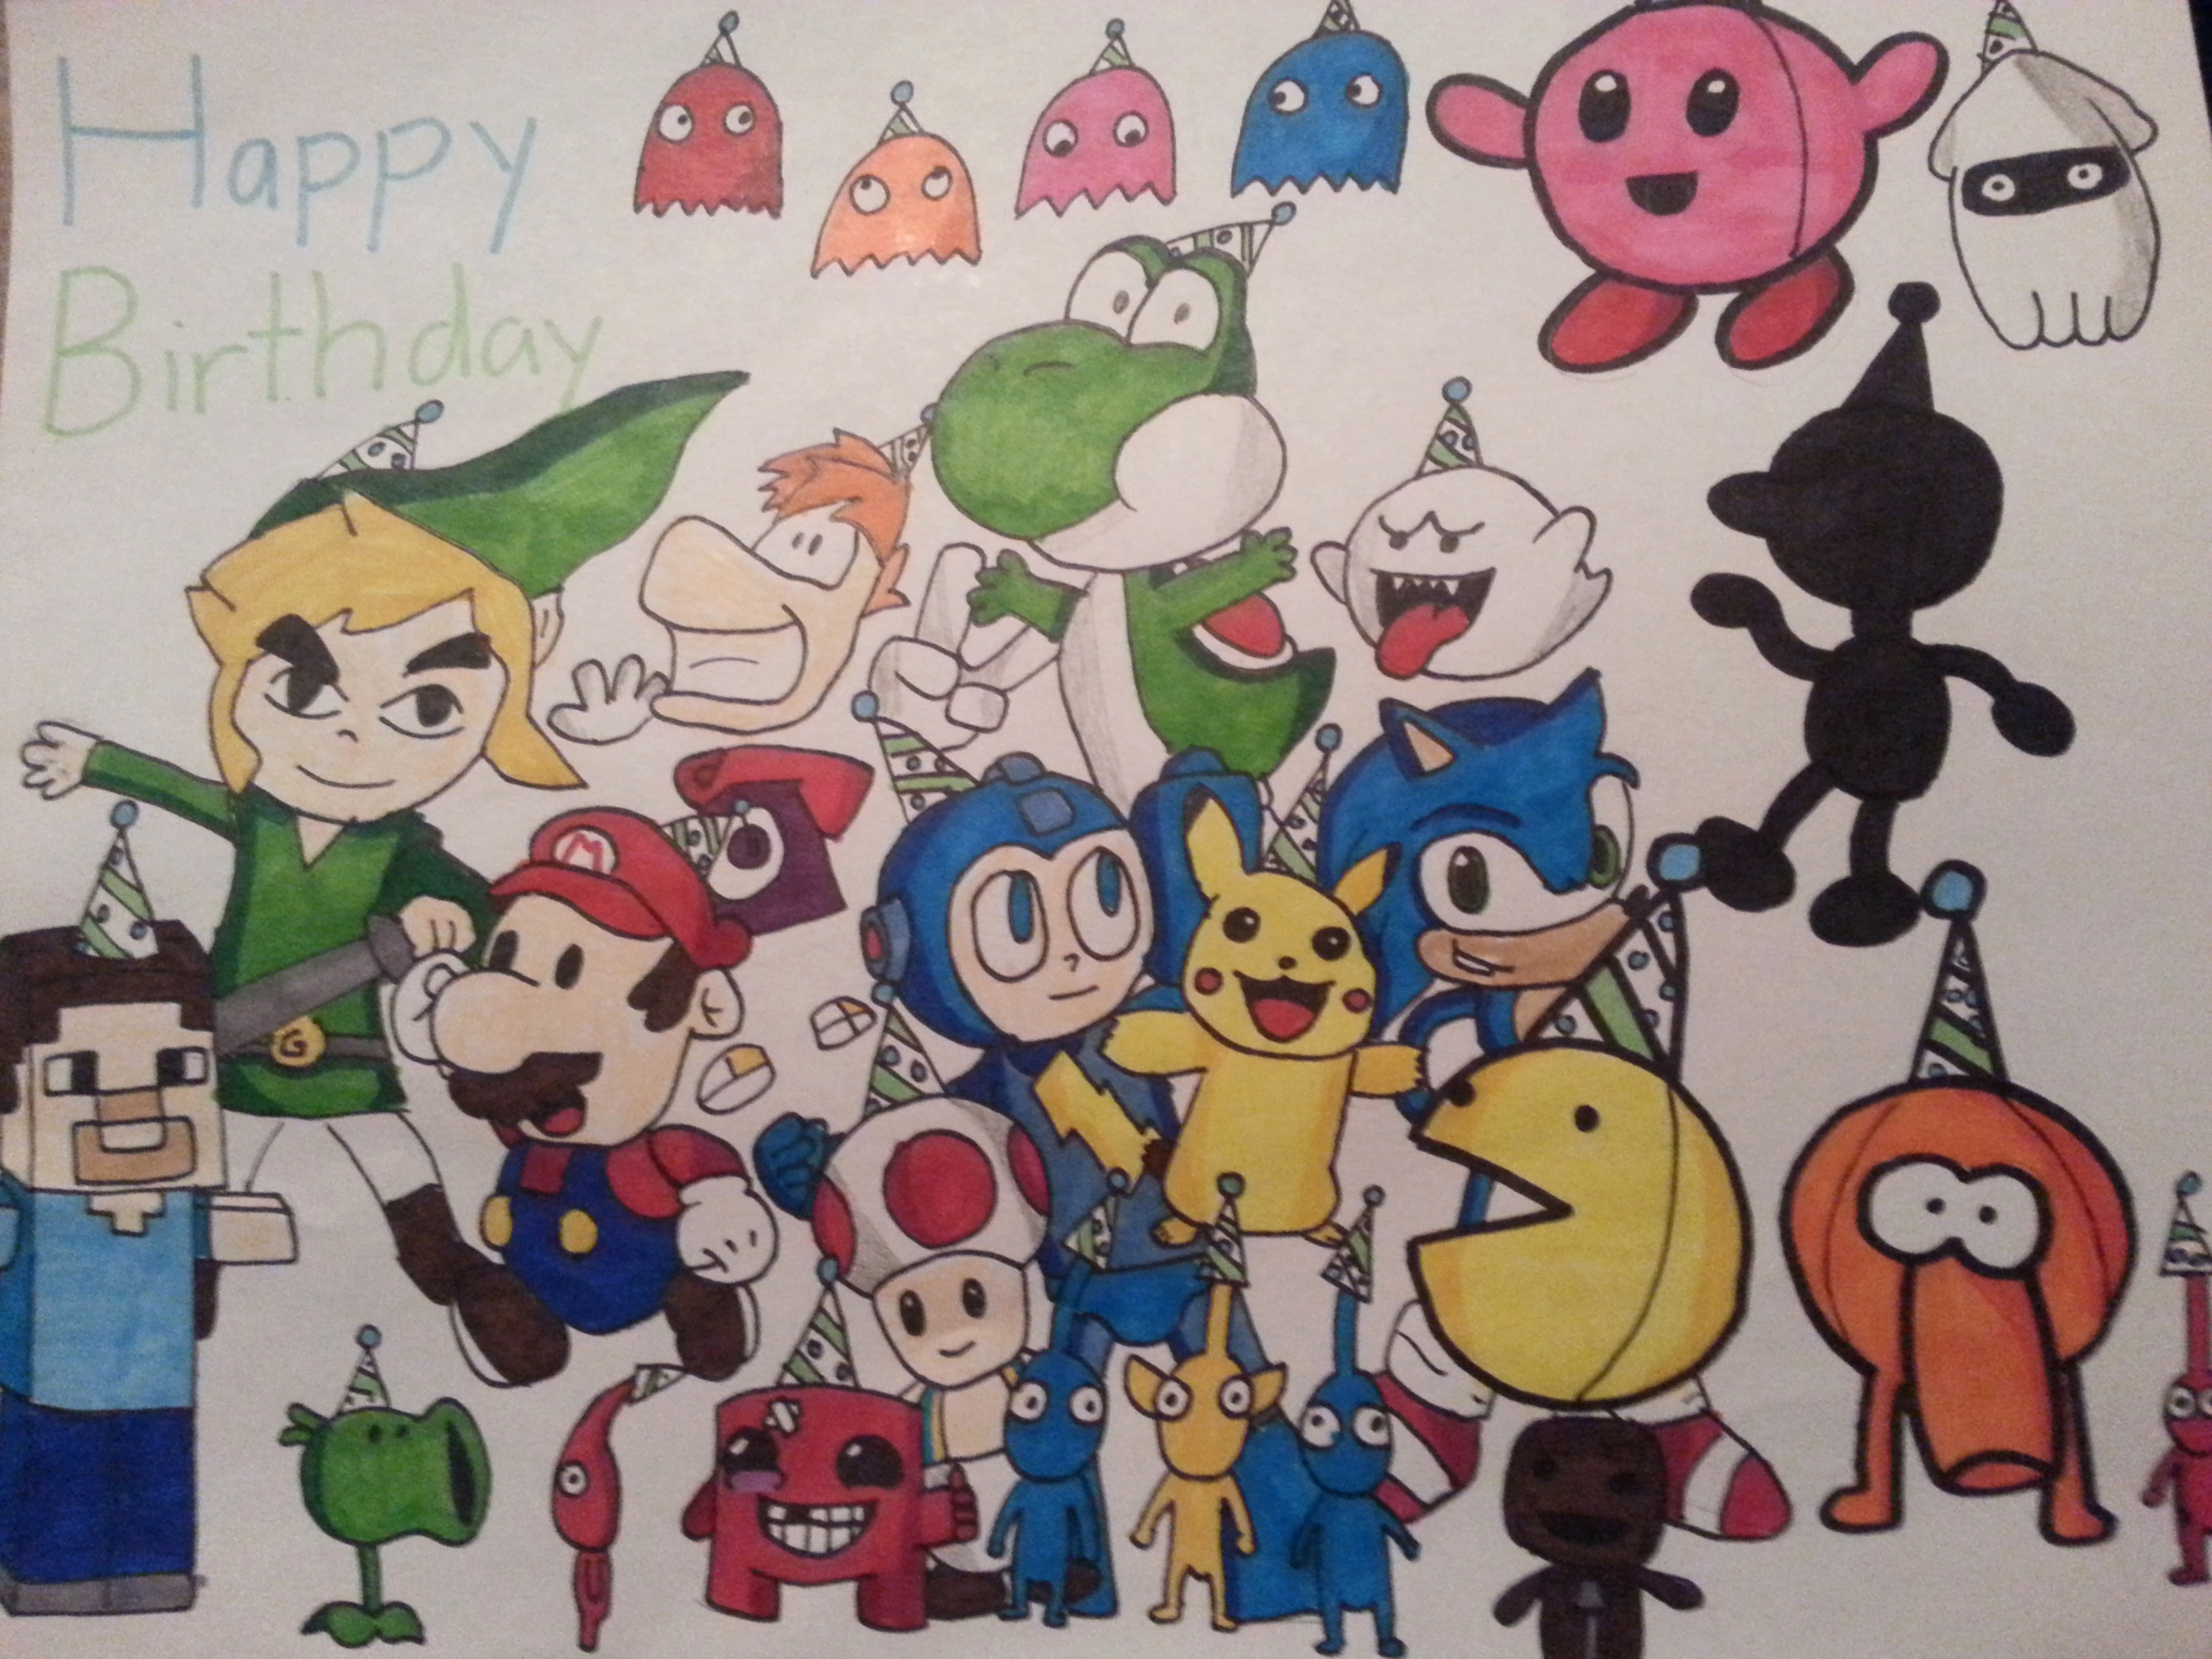 3264x2448 Overwatch Birthday Card Fresh Video Game Character Birthday Card